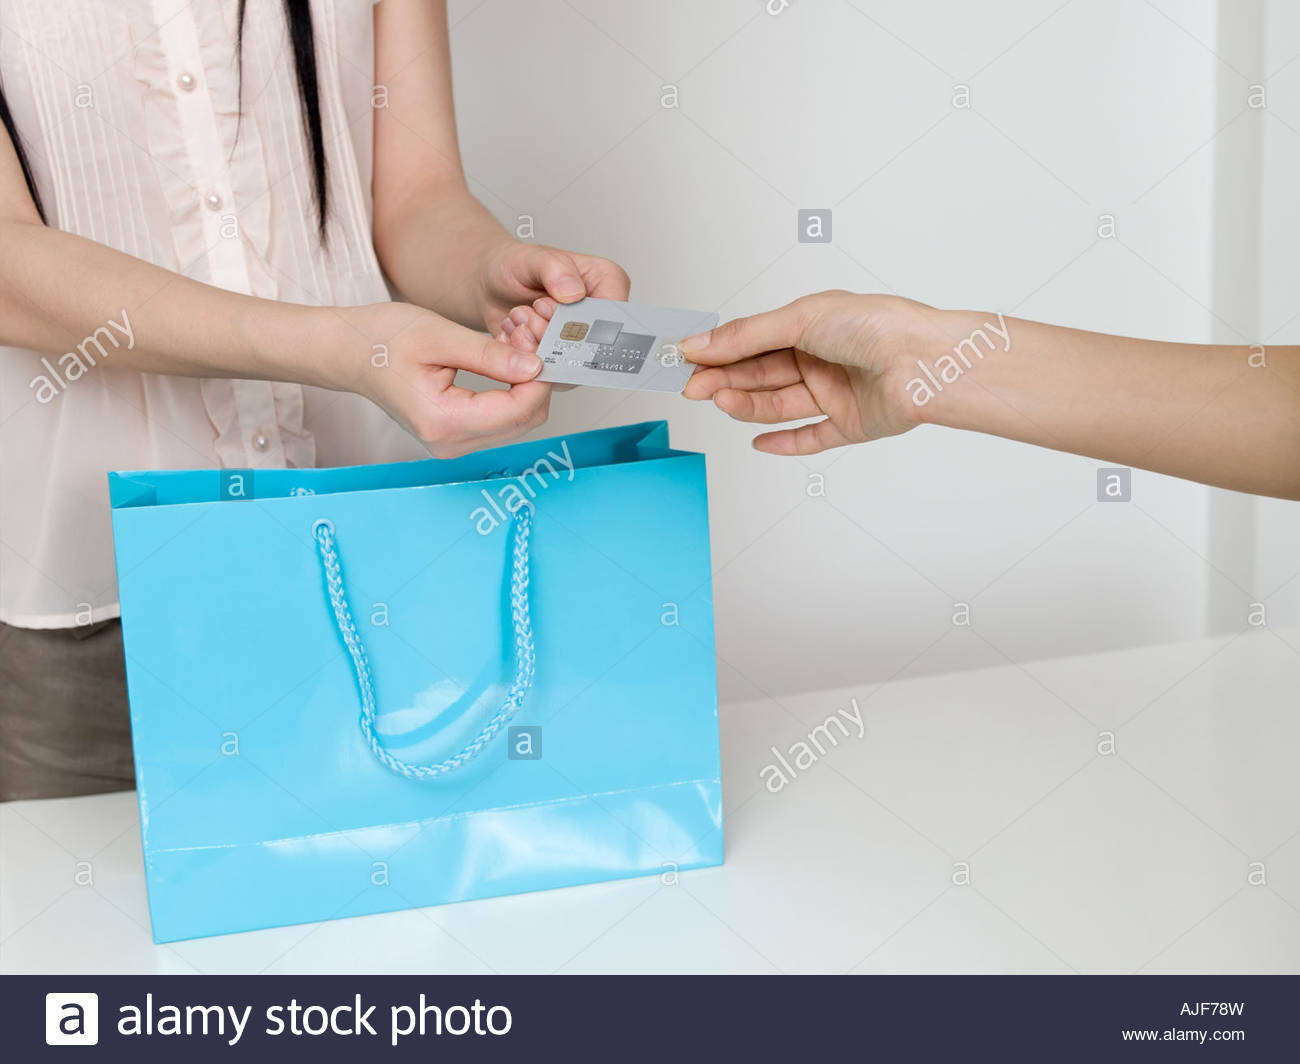 Woman shopping with credit card - Stock Image